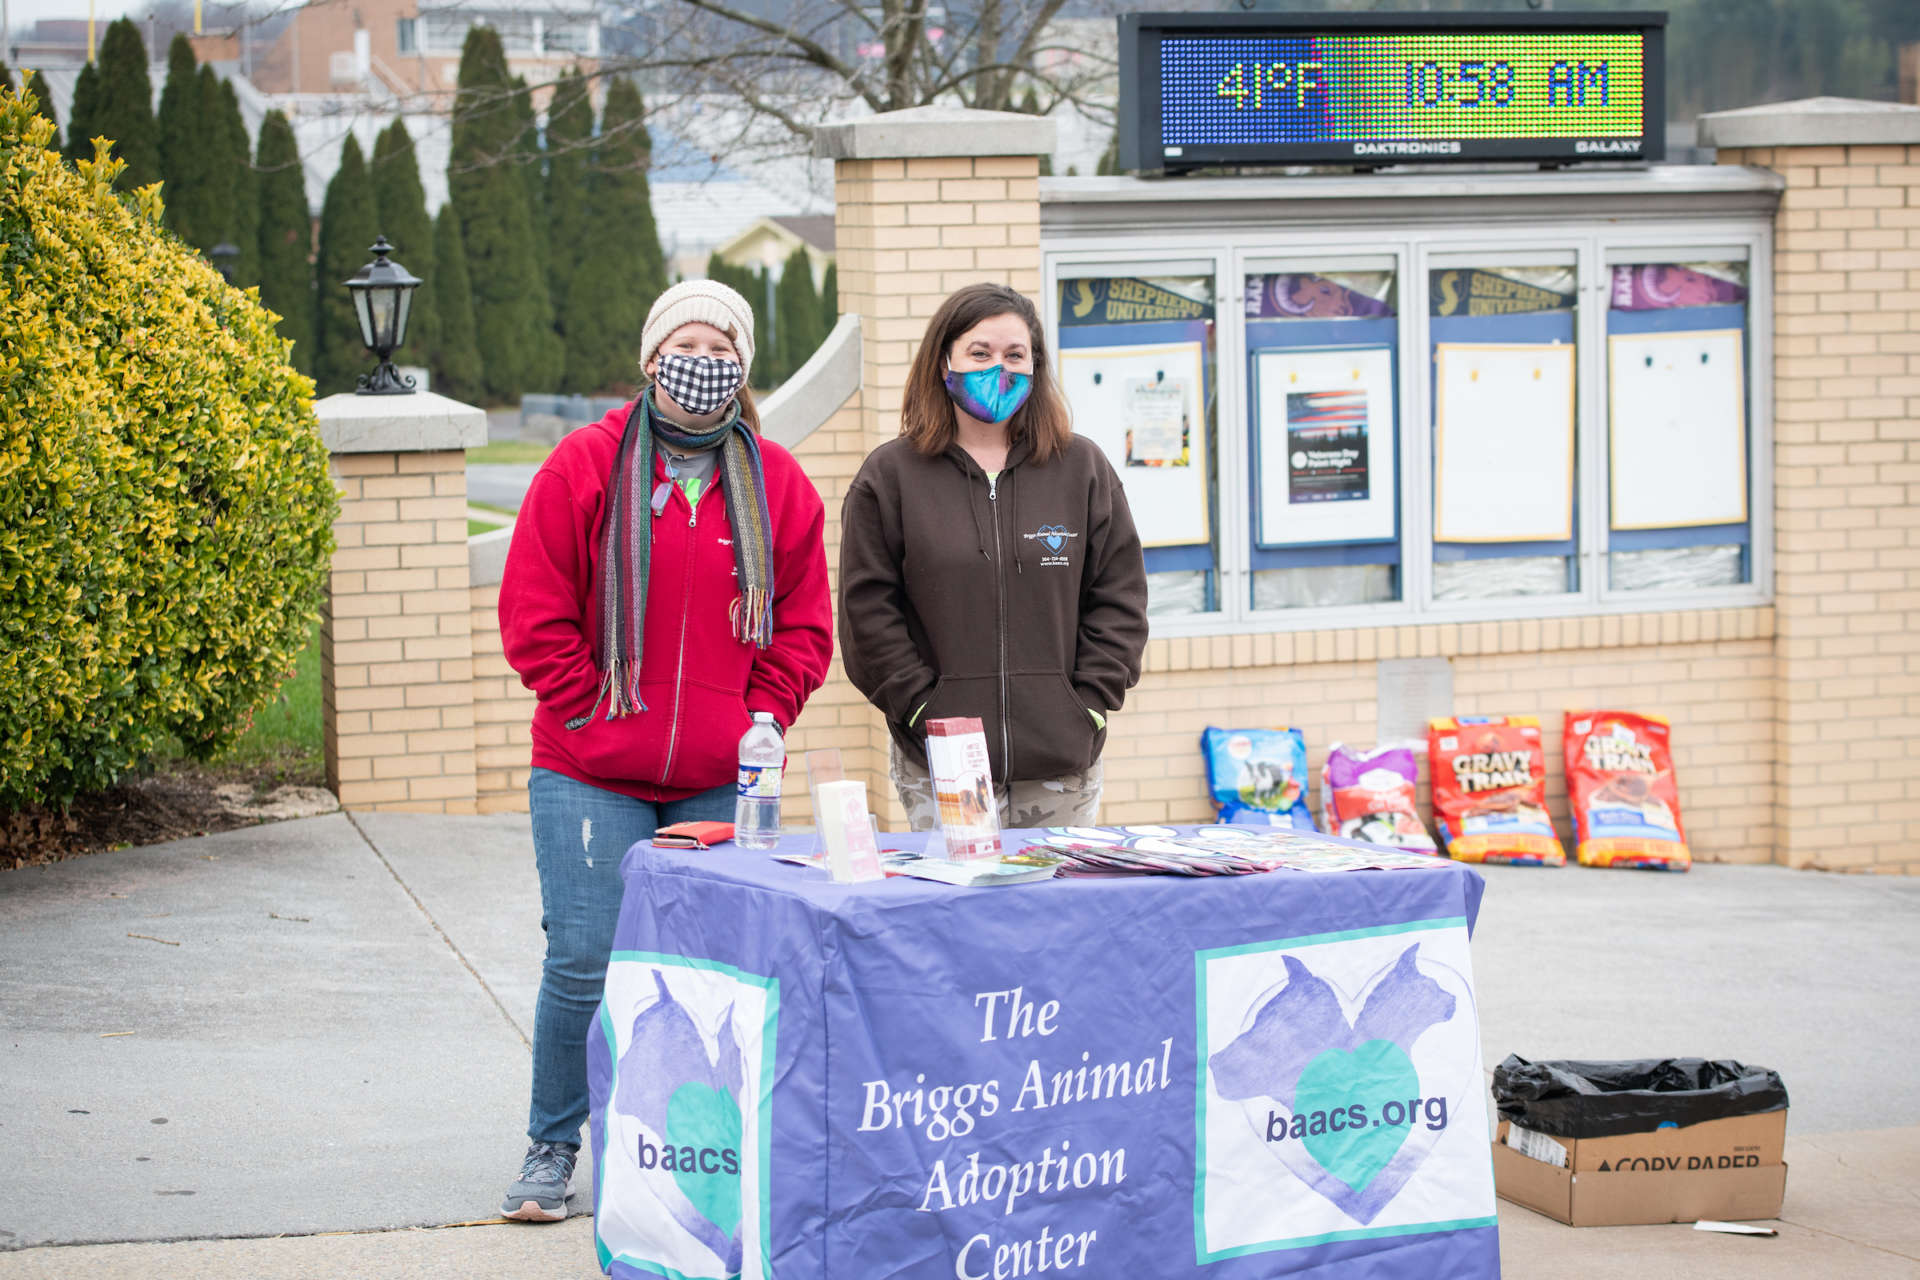 Pictured (l. to r.) are Hayley Miller and Megan Hessenberger from Briggs Animal Adoption Center.